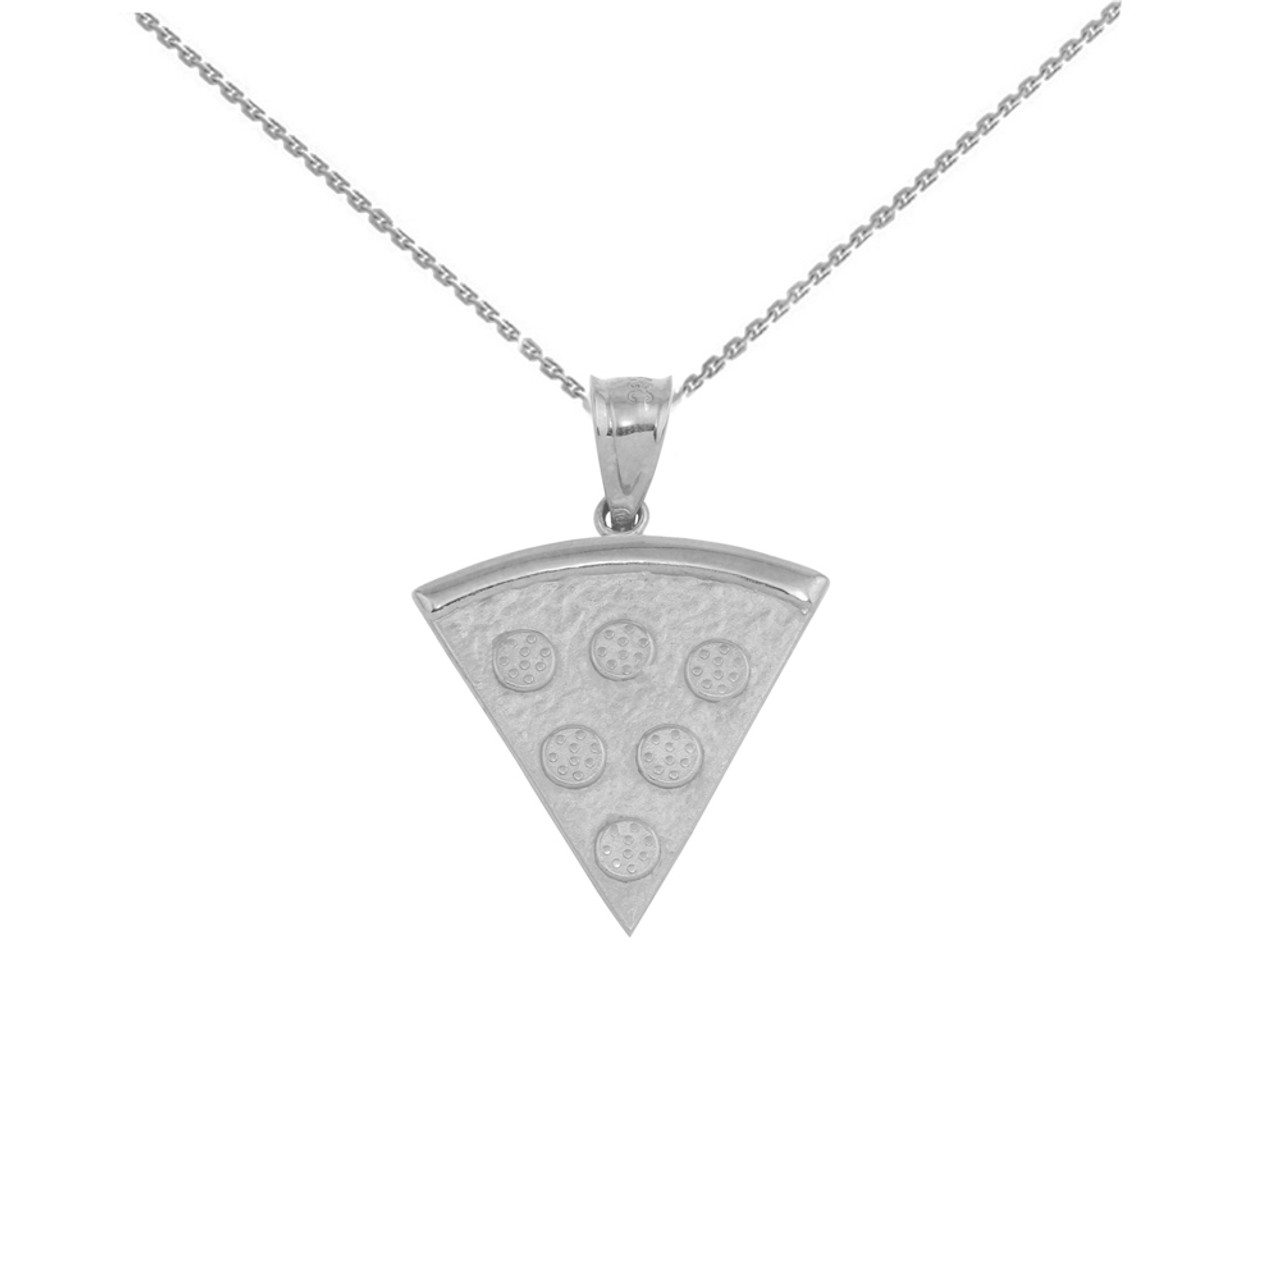 Friendship Pendant Necklace Sterling silver pizza slice friendship pendant necklace audiocablefo